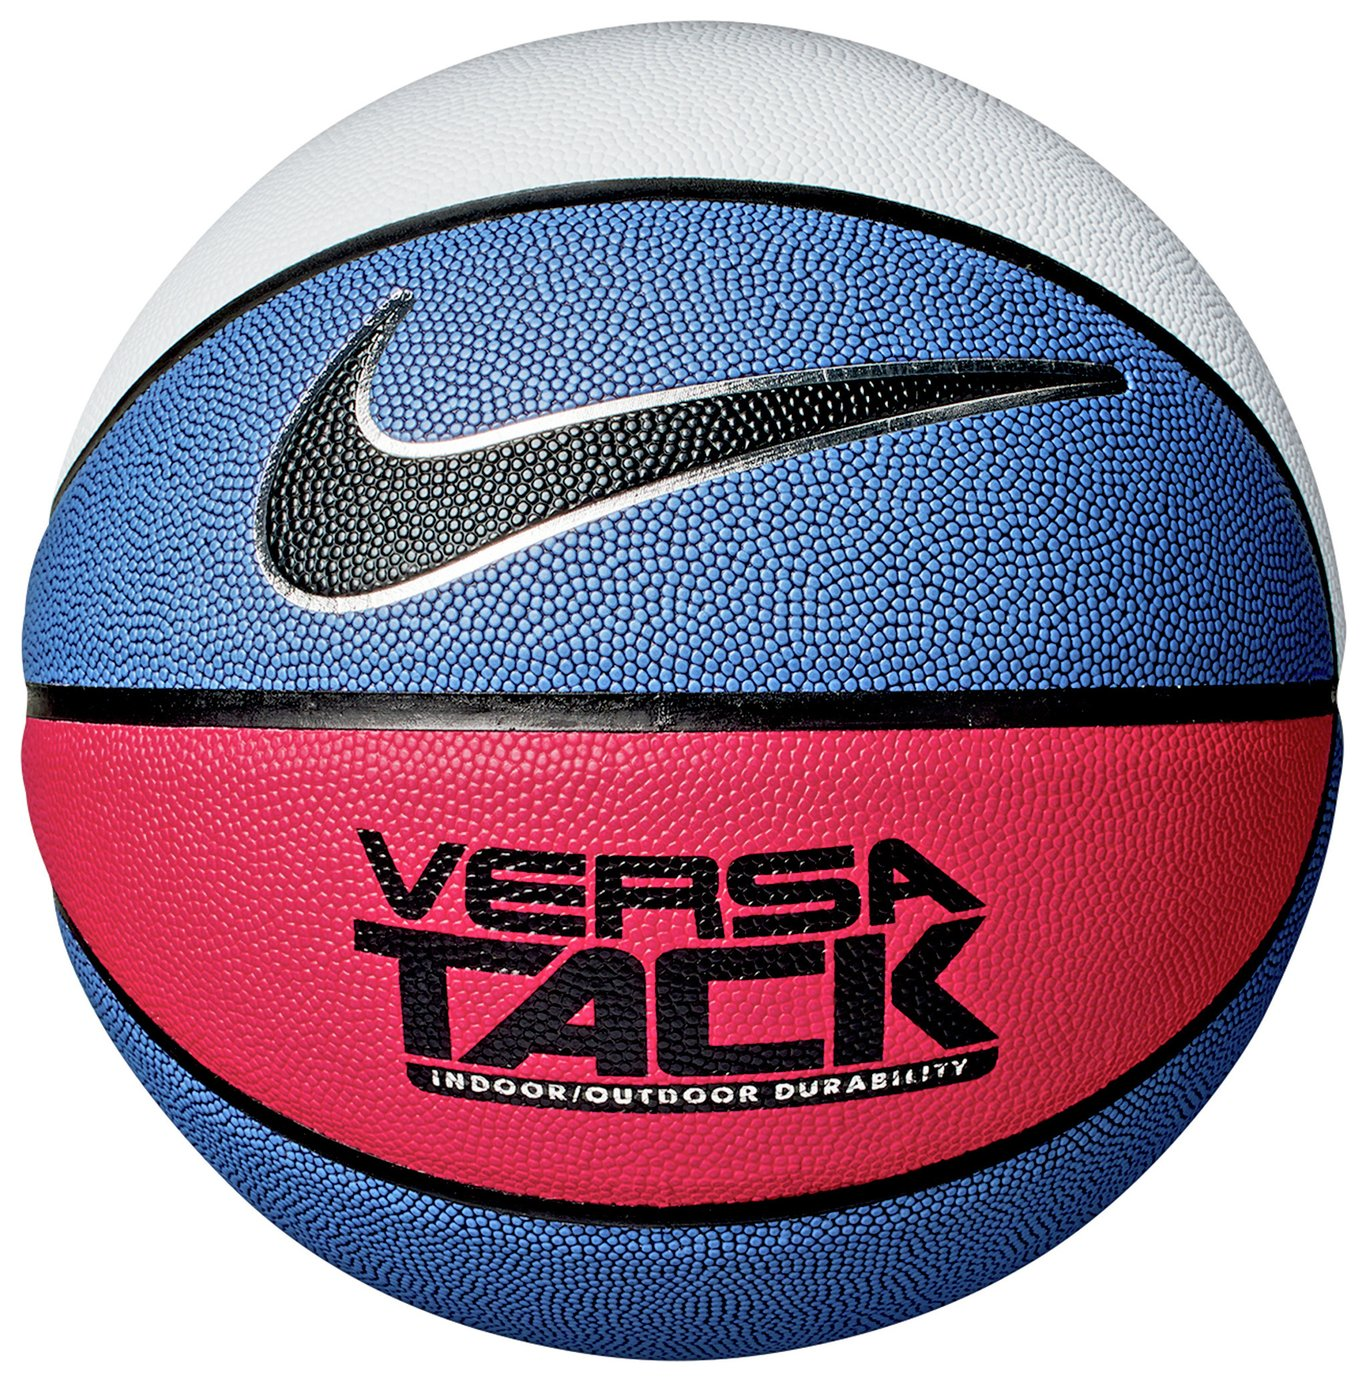 Nike Versa Tack Size 7 Basketball - Blue and Red